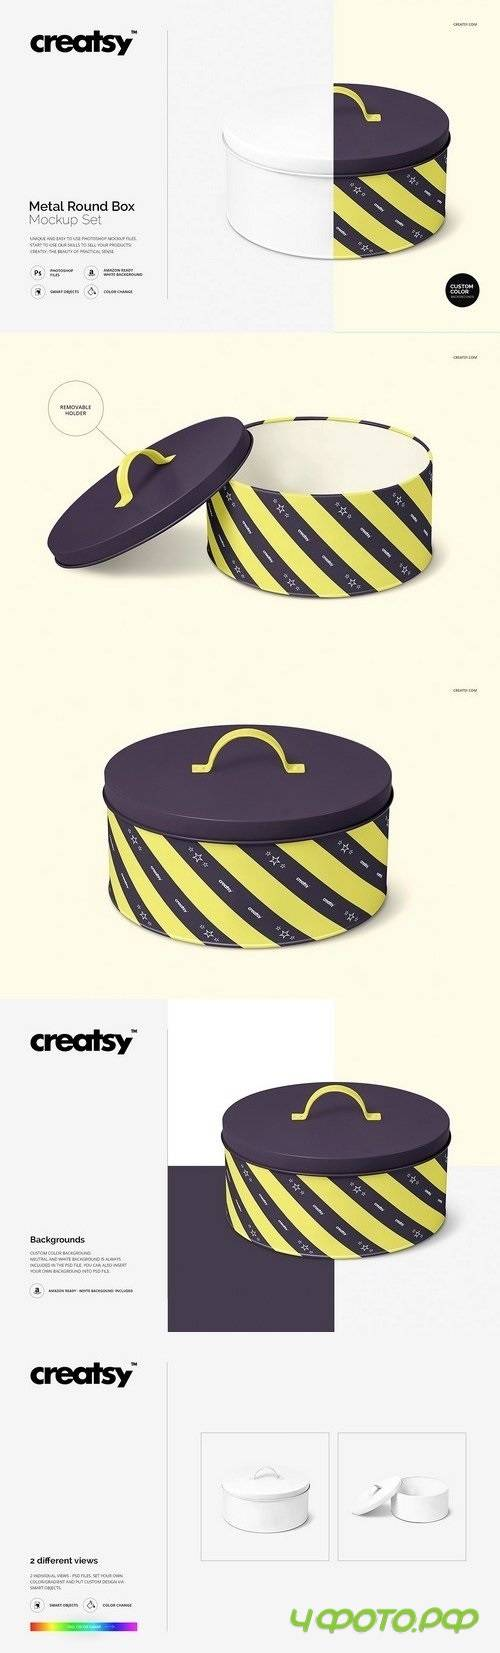 Metal Round Box Mockup Set 1457869